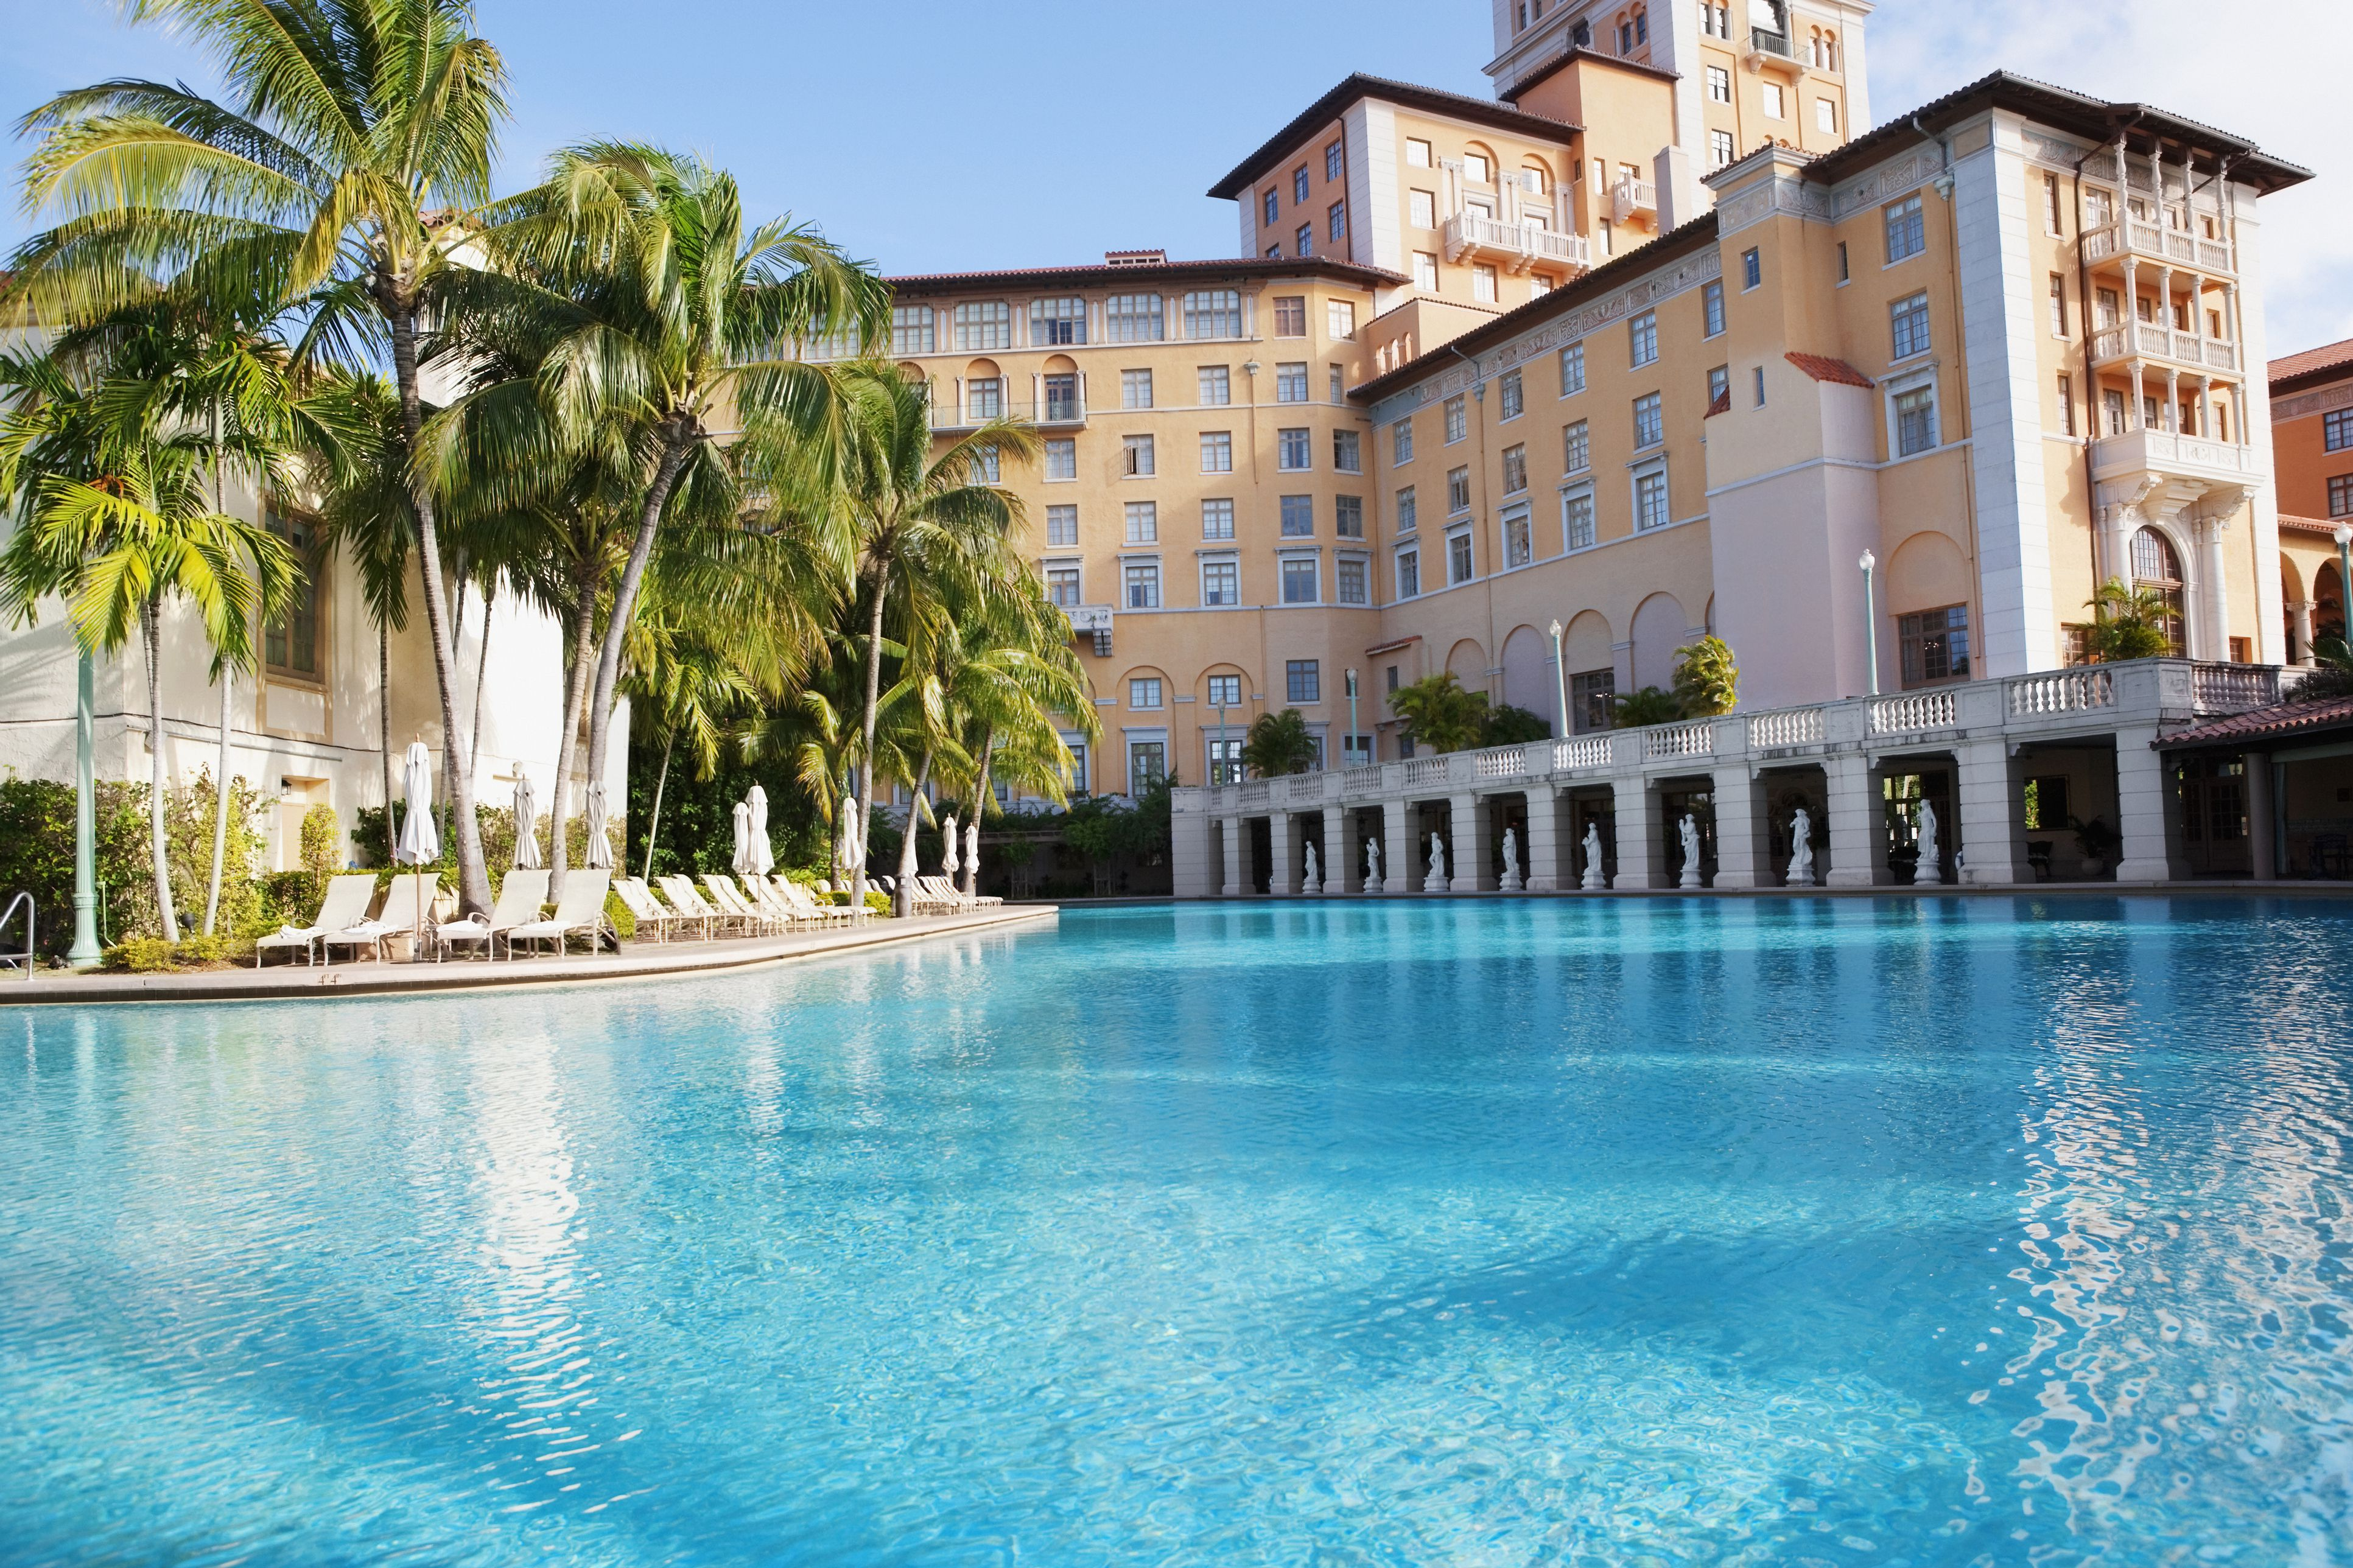 Swimming pool at a luxury hotel,Biltmore Hotel,Coral Gables,Florida,USA